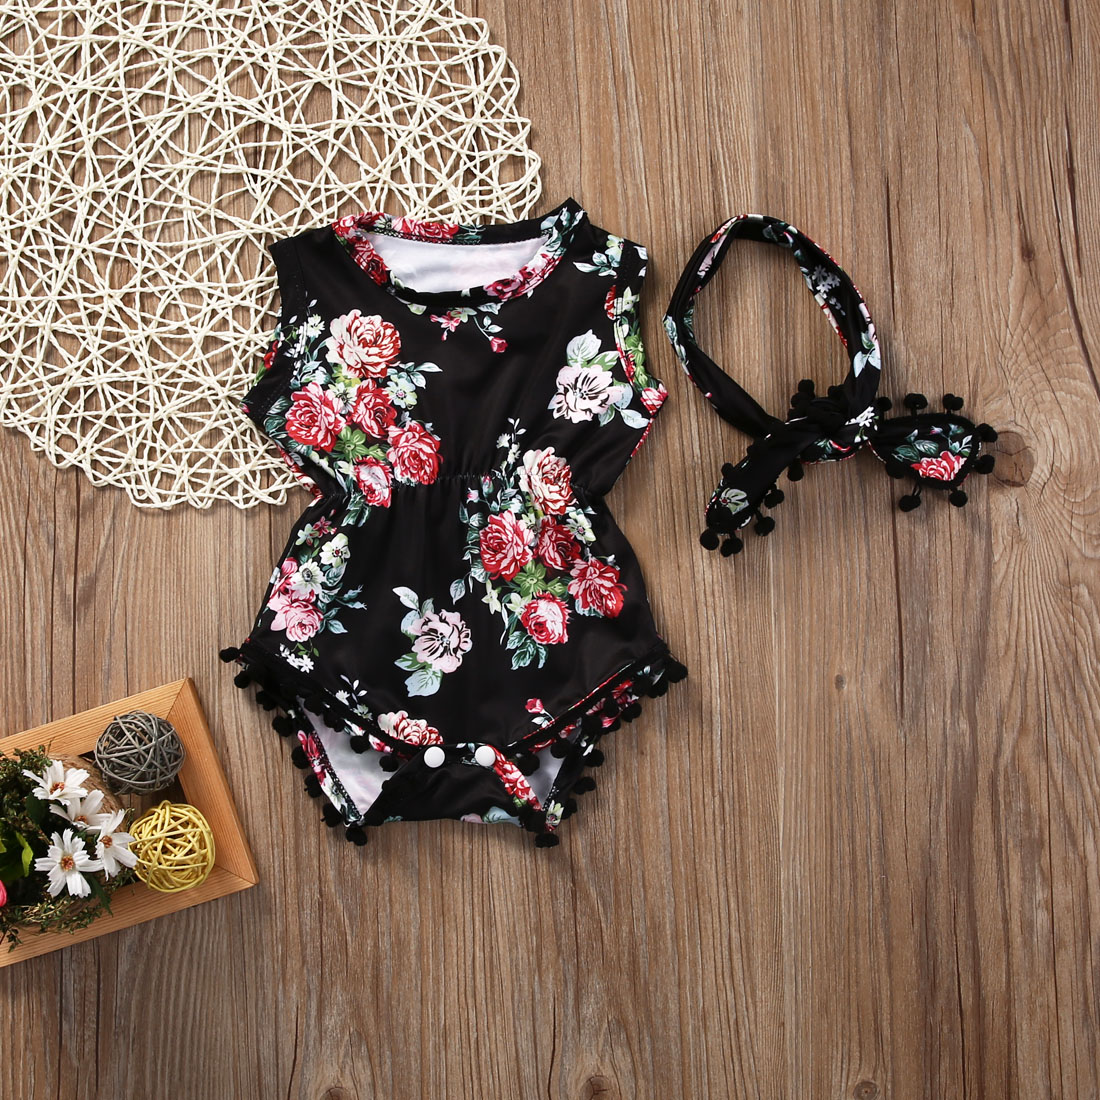 431083b4d Cute Adorable Floral Romper Baby Girls Sleeveless Tassels Romper One pieces  +Headband Sunsuit Outfit Clothes 0 6 Months Black-in Rompers from Mother &  Kids ...